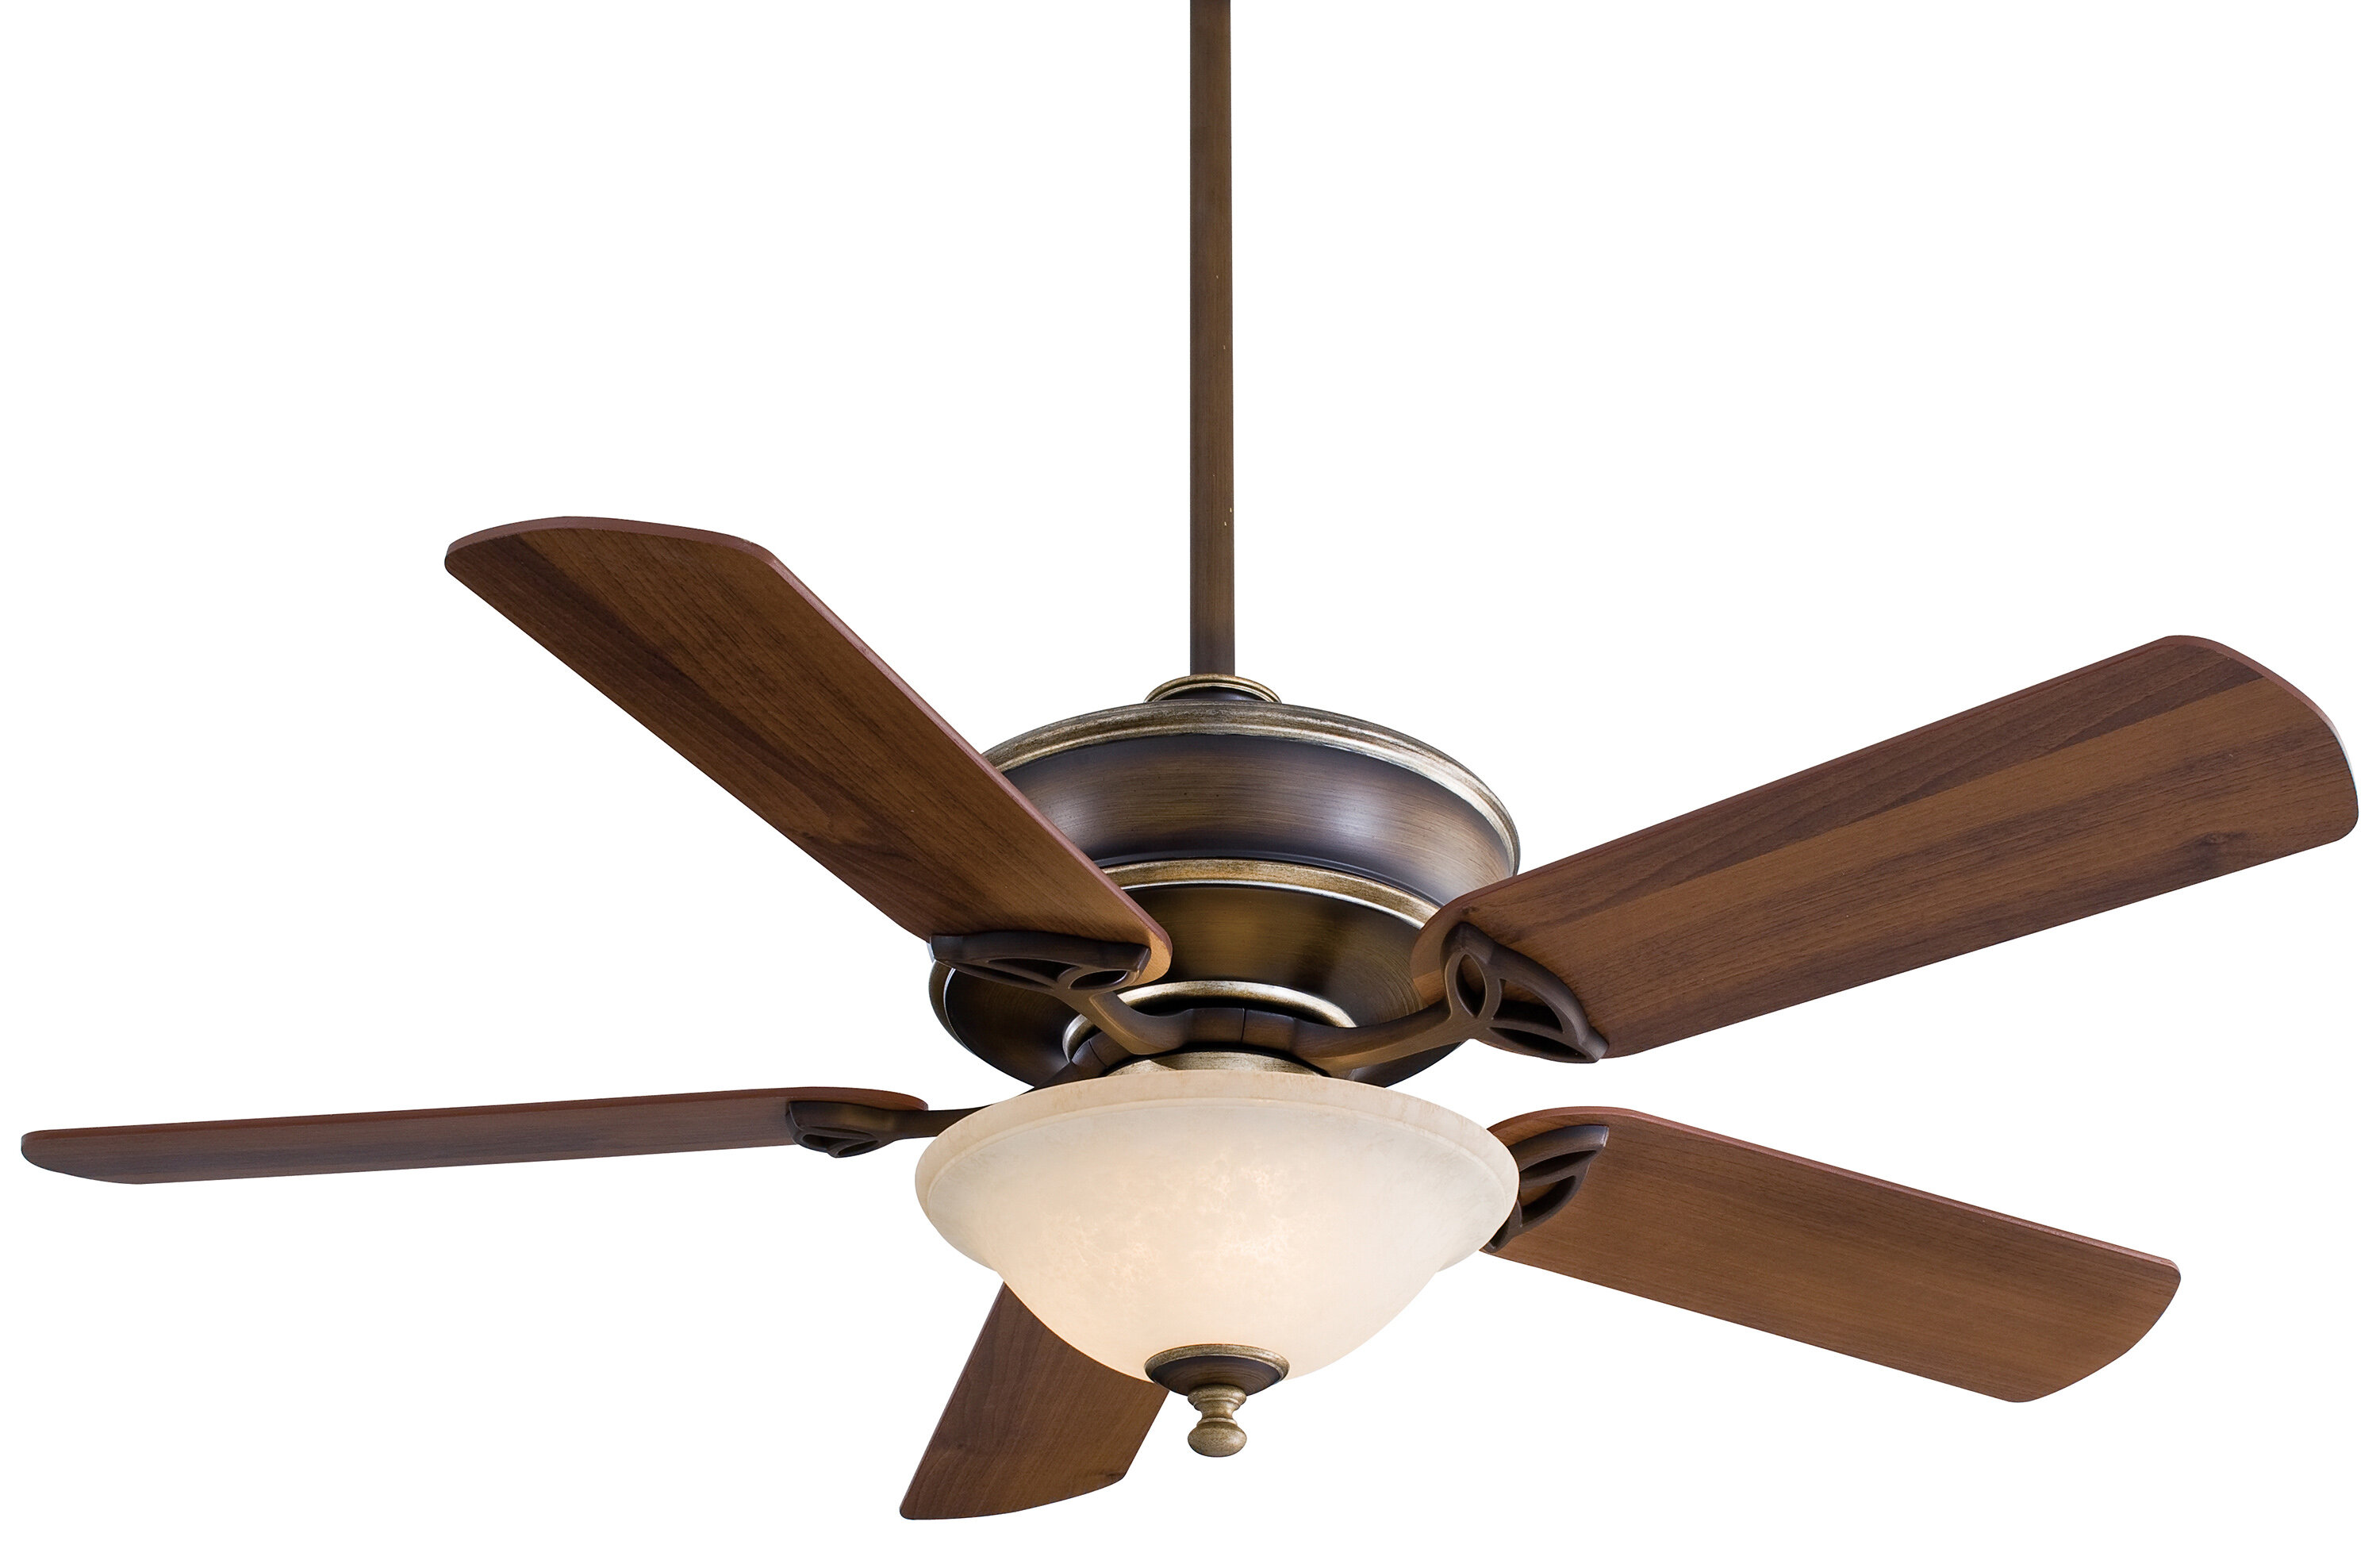 Minka Aire 52 Bolo 5 Blade Ceiling Fan With Remote Light Kit Included Reviews Wayfair